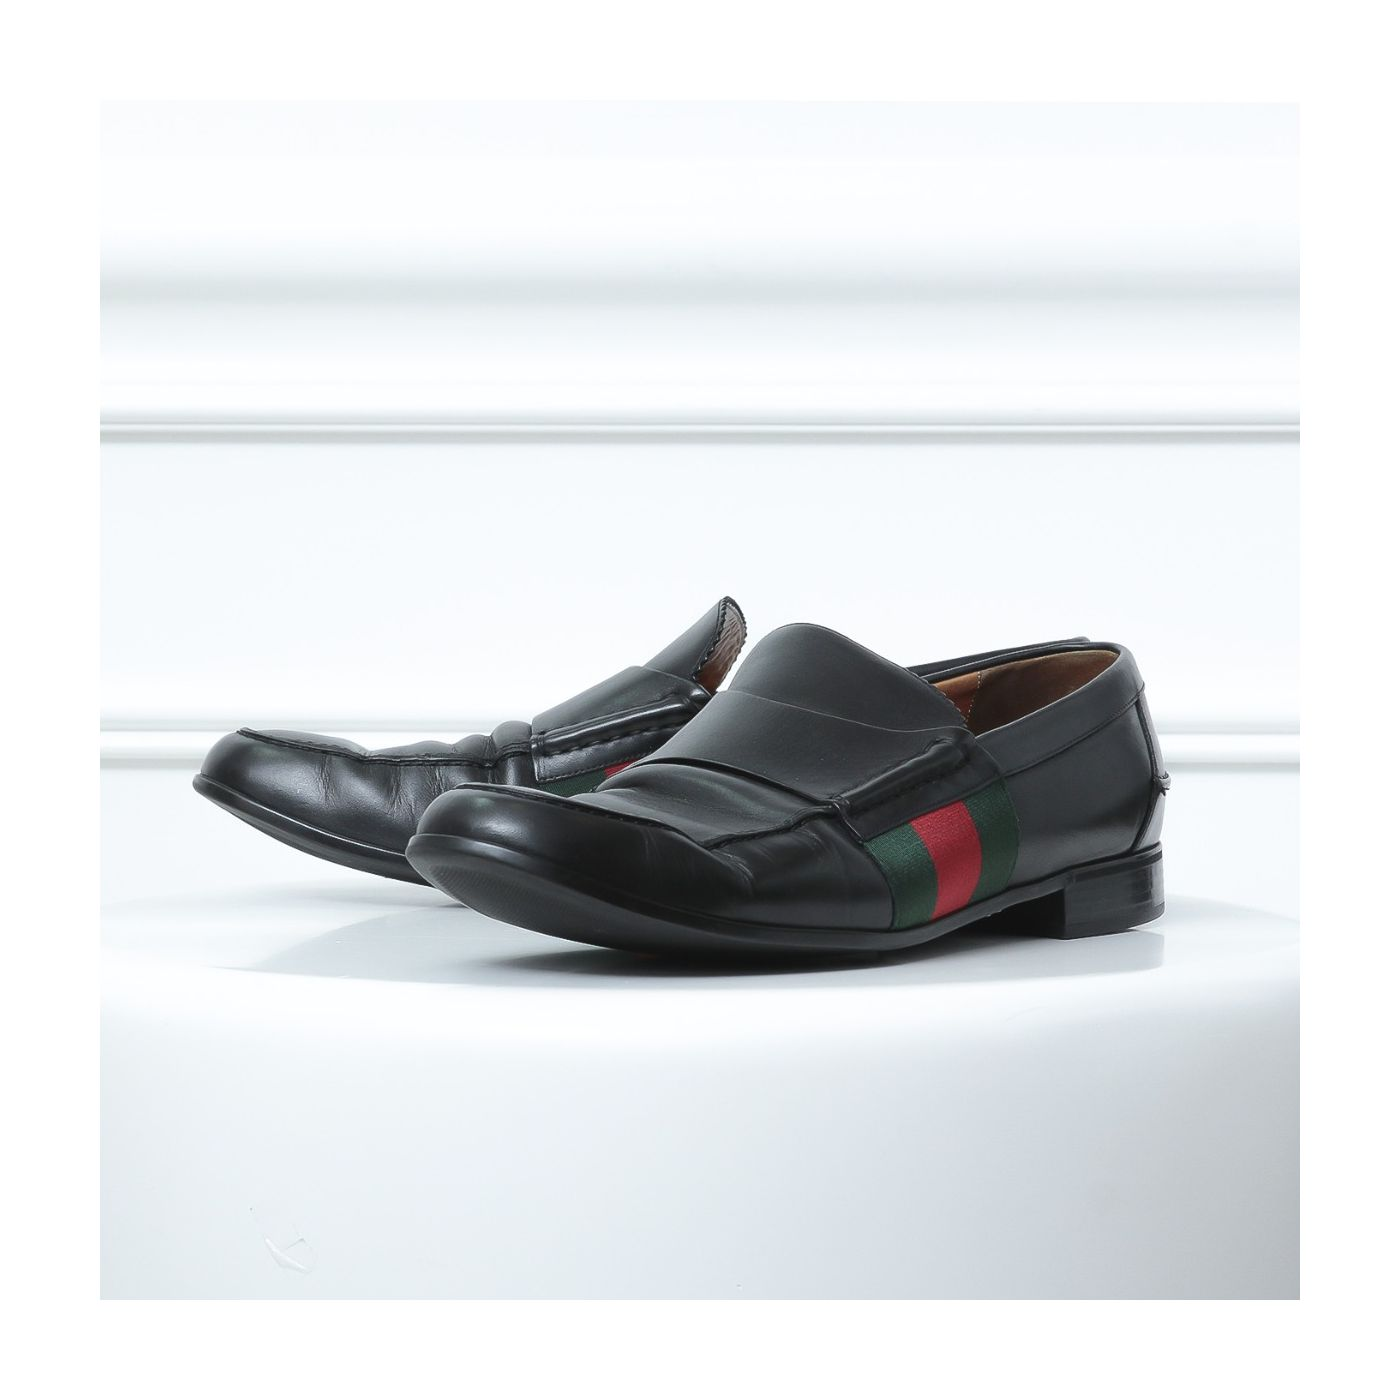 Gucci Black Web Moccasins Loafers 10.5